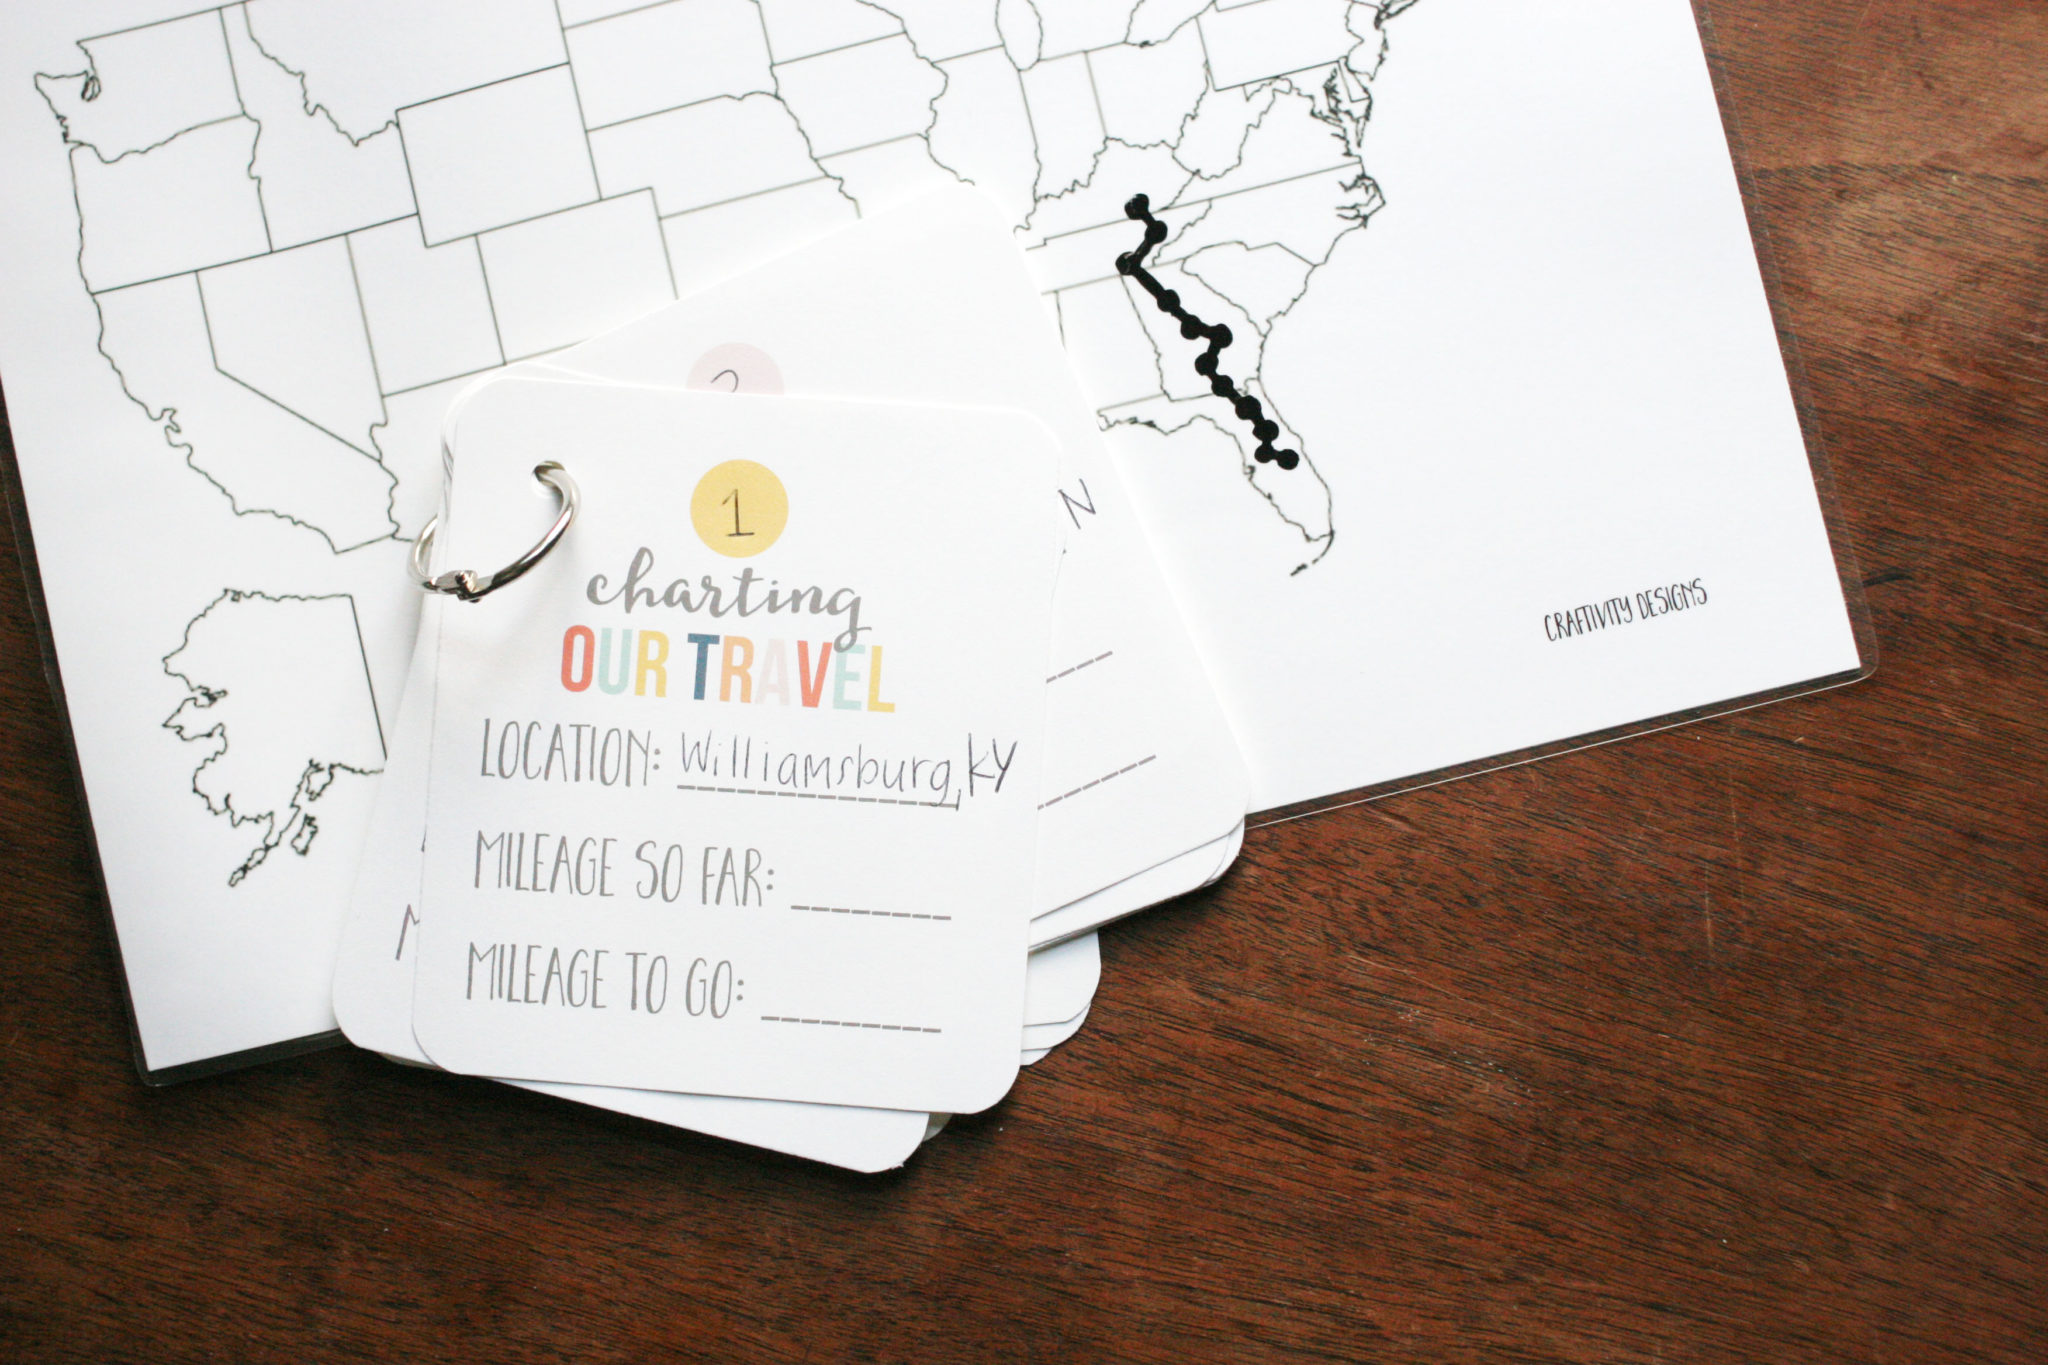 Map My Trip for Kids | Charting Travel with a Free Map ... Map My Travel on pa travel map, make a travel map, my trip to greece - part 2, sd travel map, create your own travel map, nc travel map, world travel map, my trips, travel map app on facebook, my trip to greece - part 1,